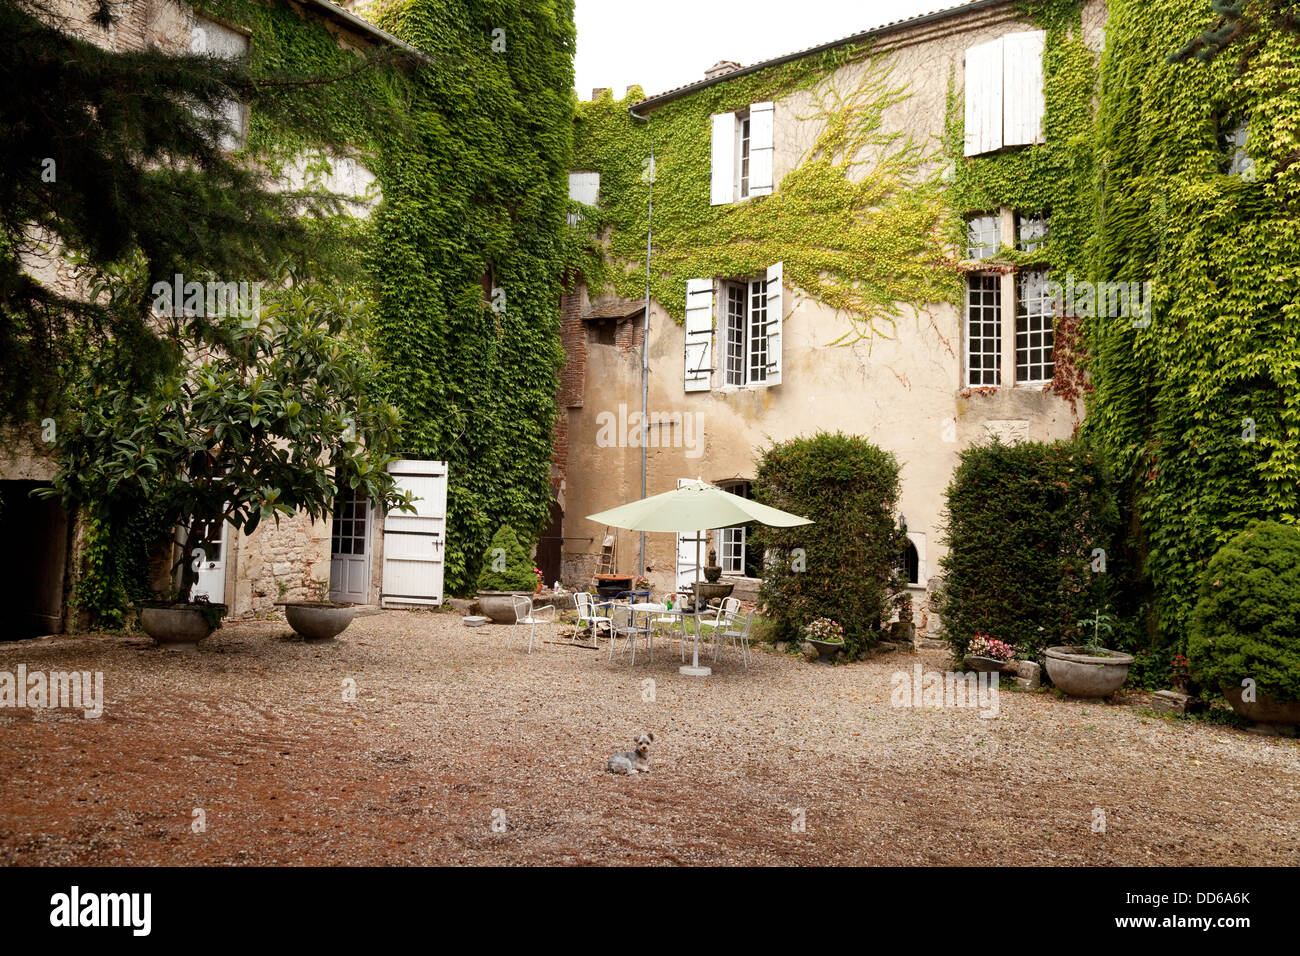 Courtyard Of A French House With Small Dog Agen France